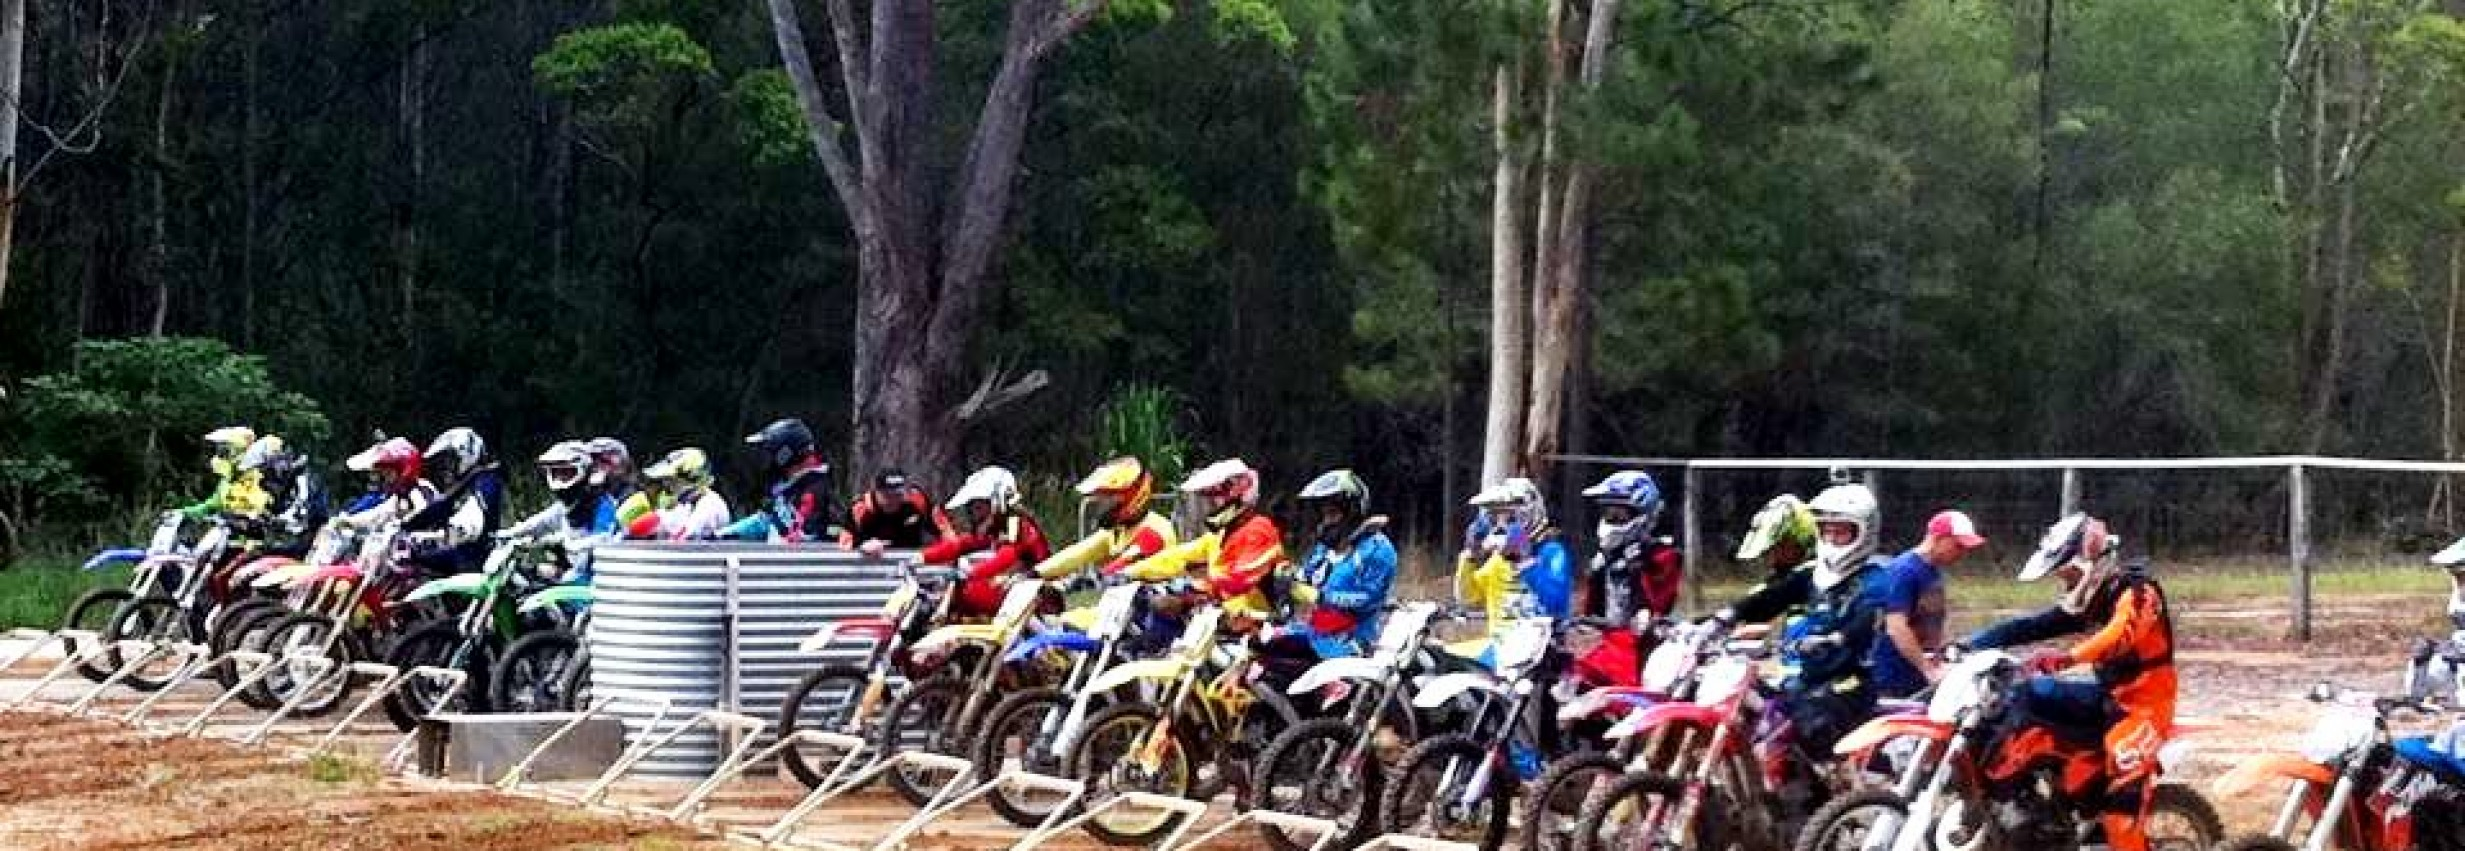 Maclean Dirt Bike Club